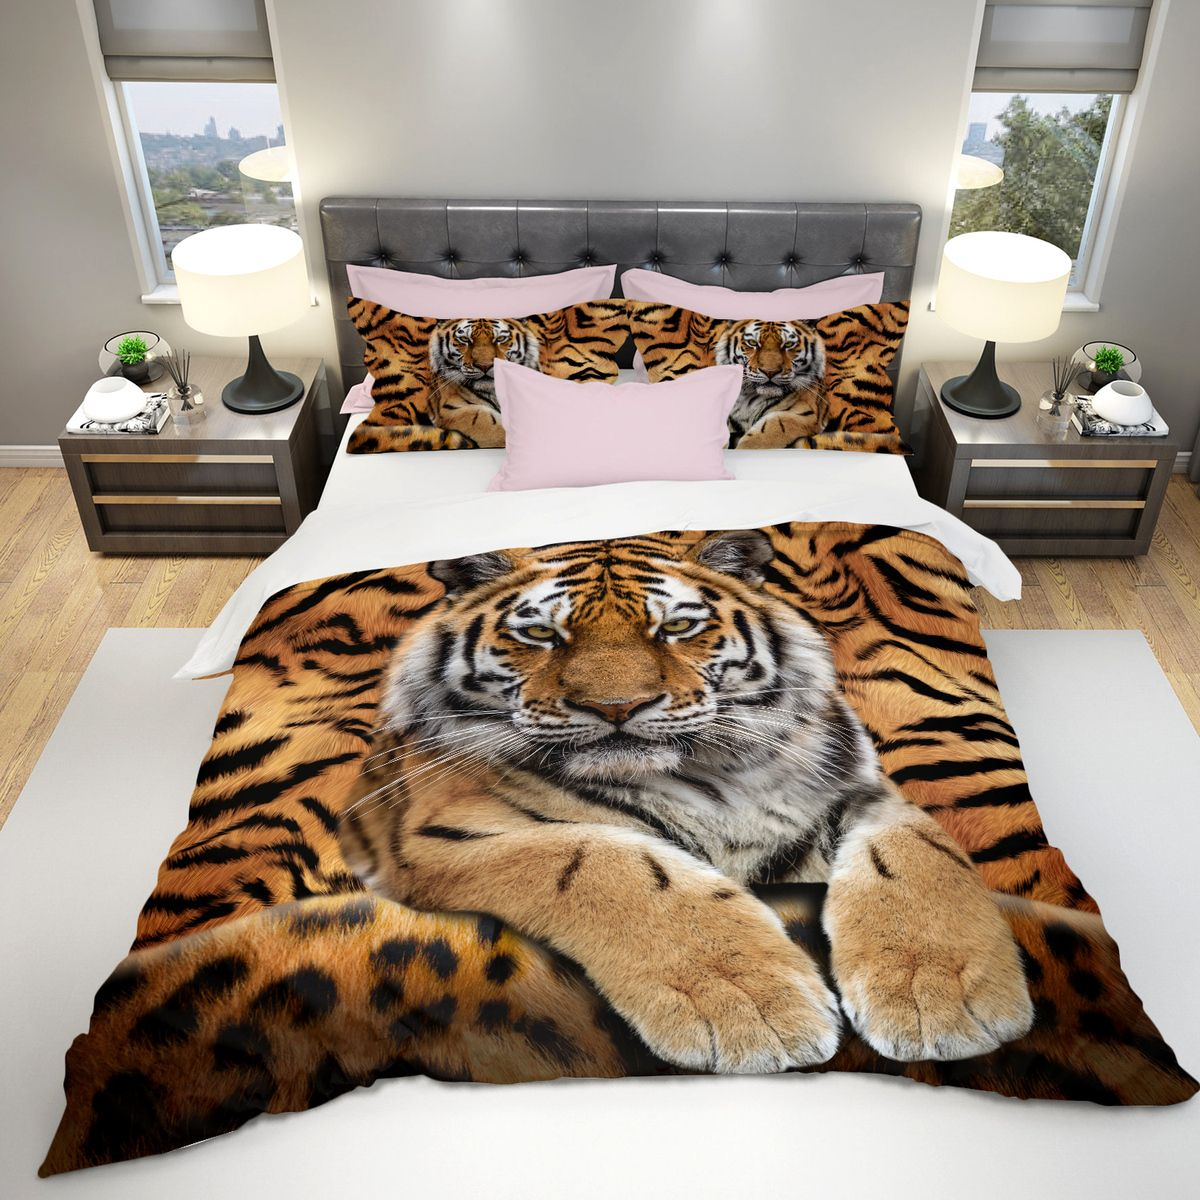 Cool tiger all over printed bedding set